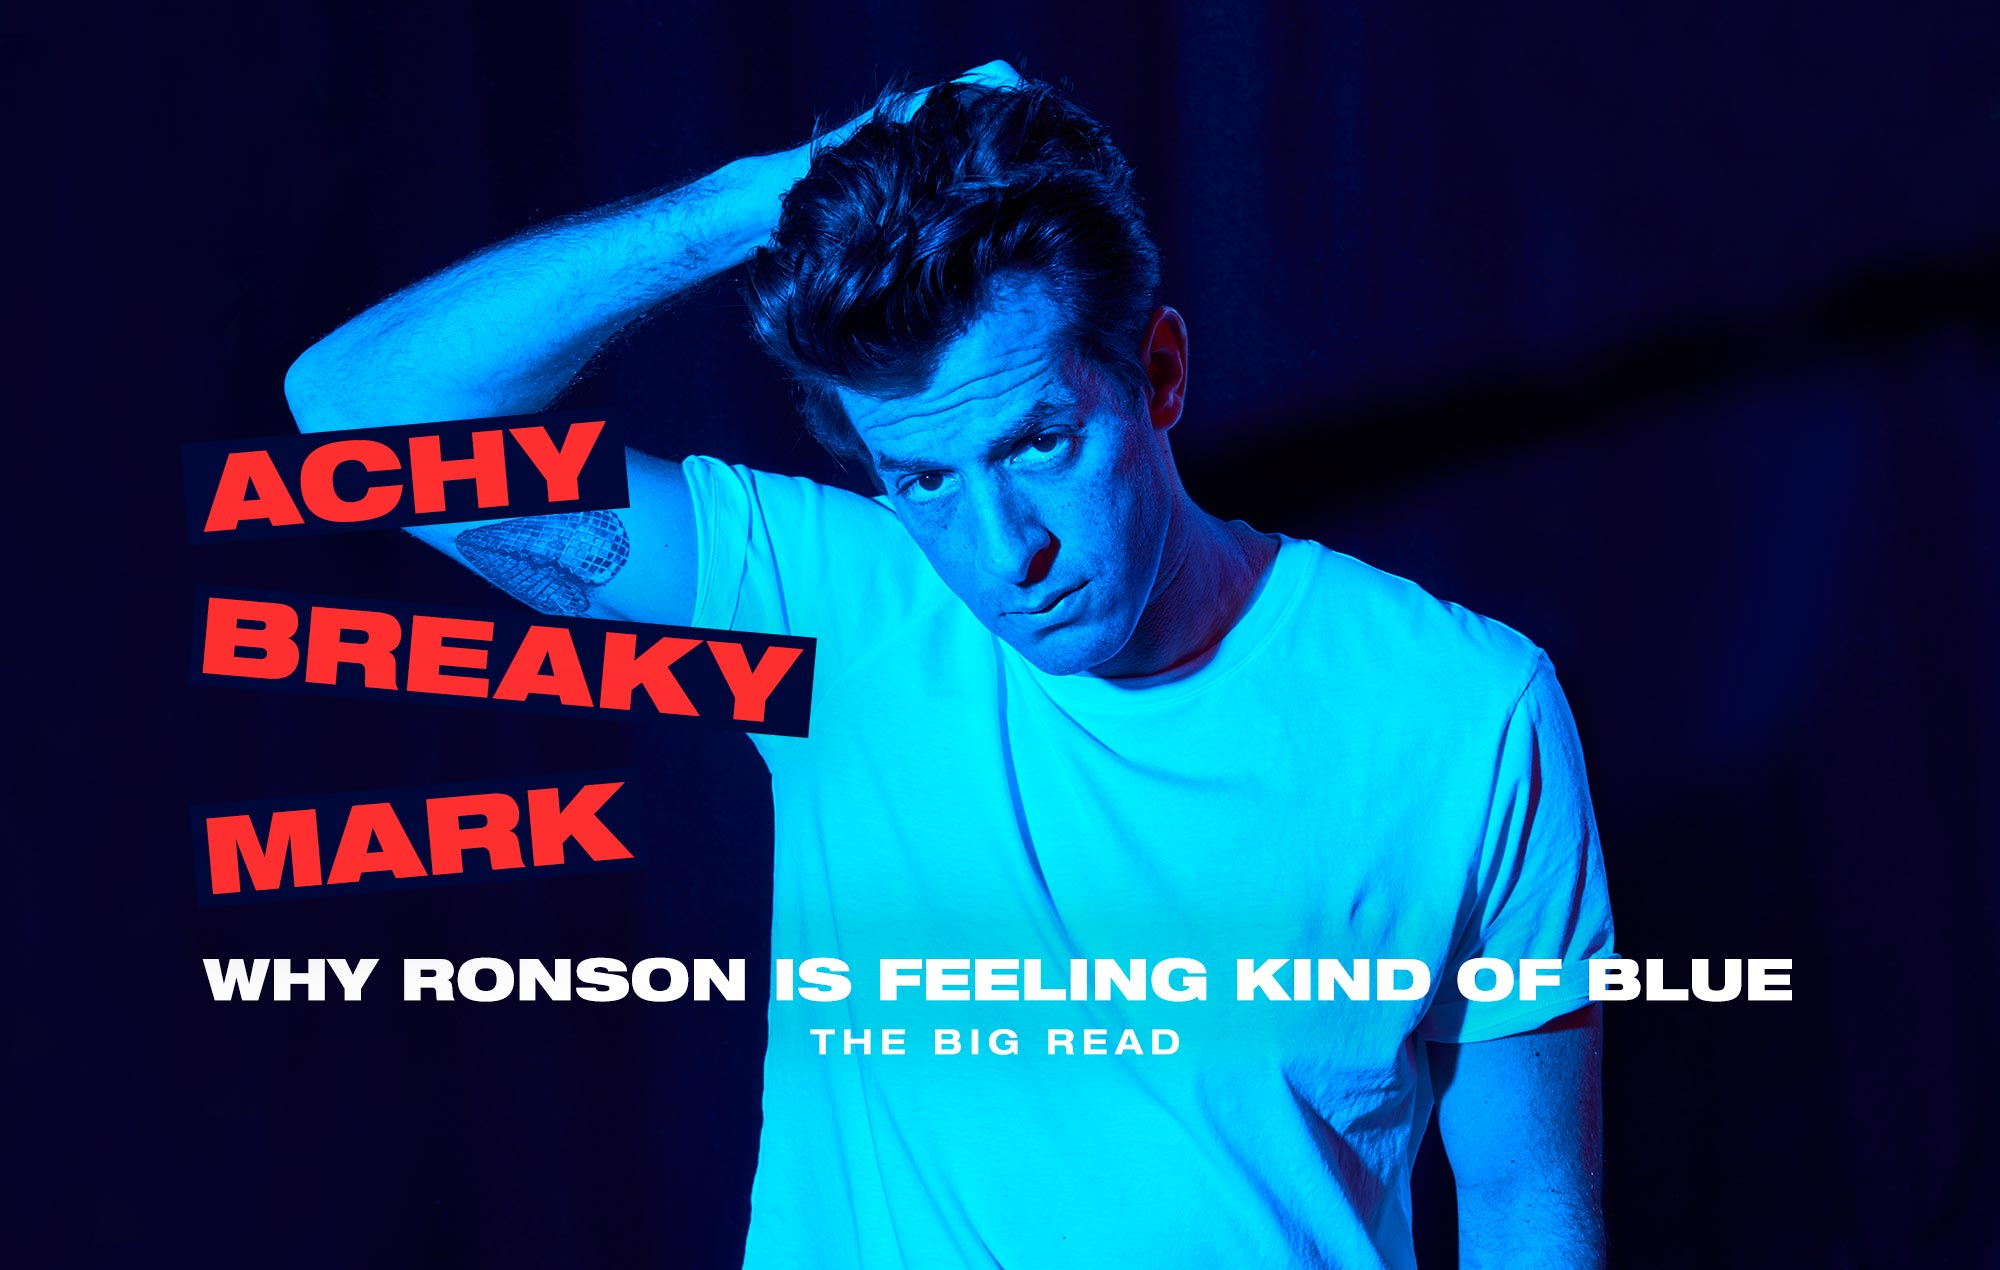 Mark Ronson NME interview